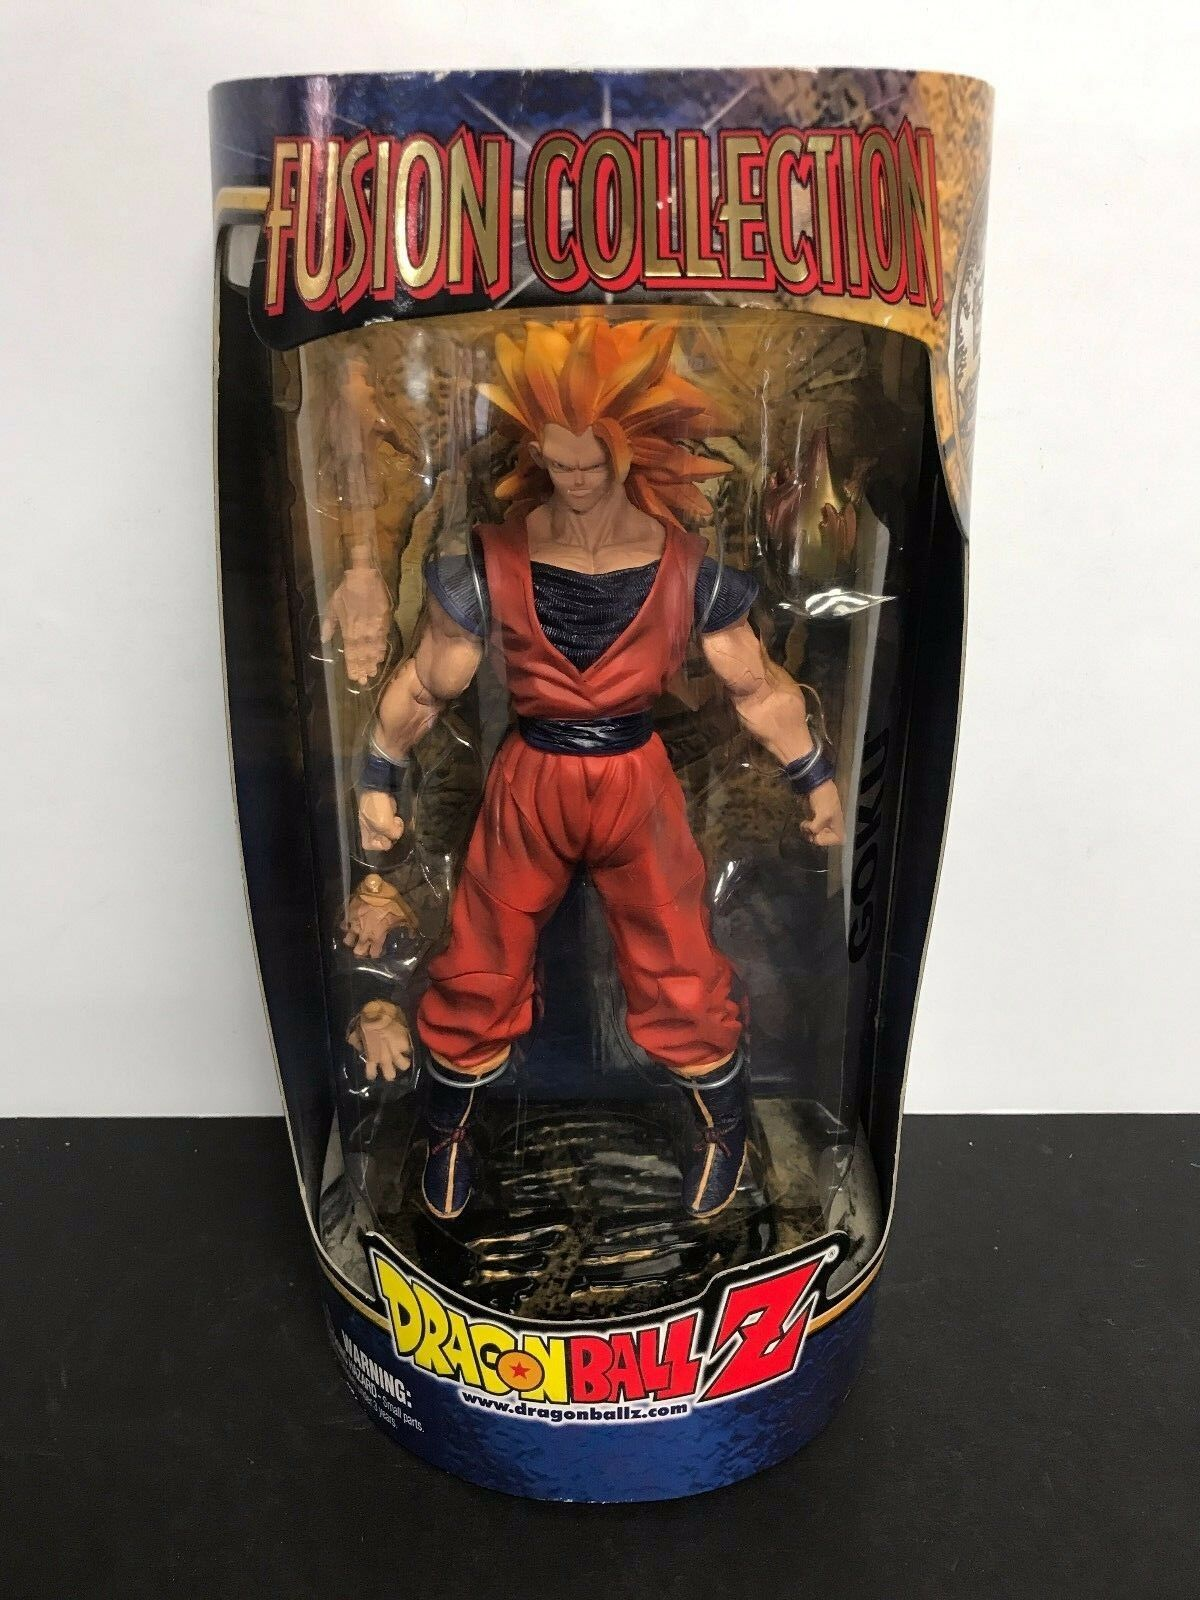 GOKU Super Saiyan 3 Goku Dragonball Z 2002 DBZ Fusion Collection action figure